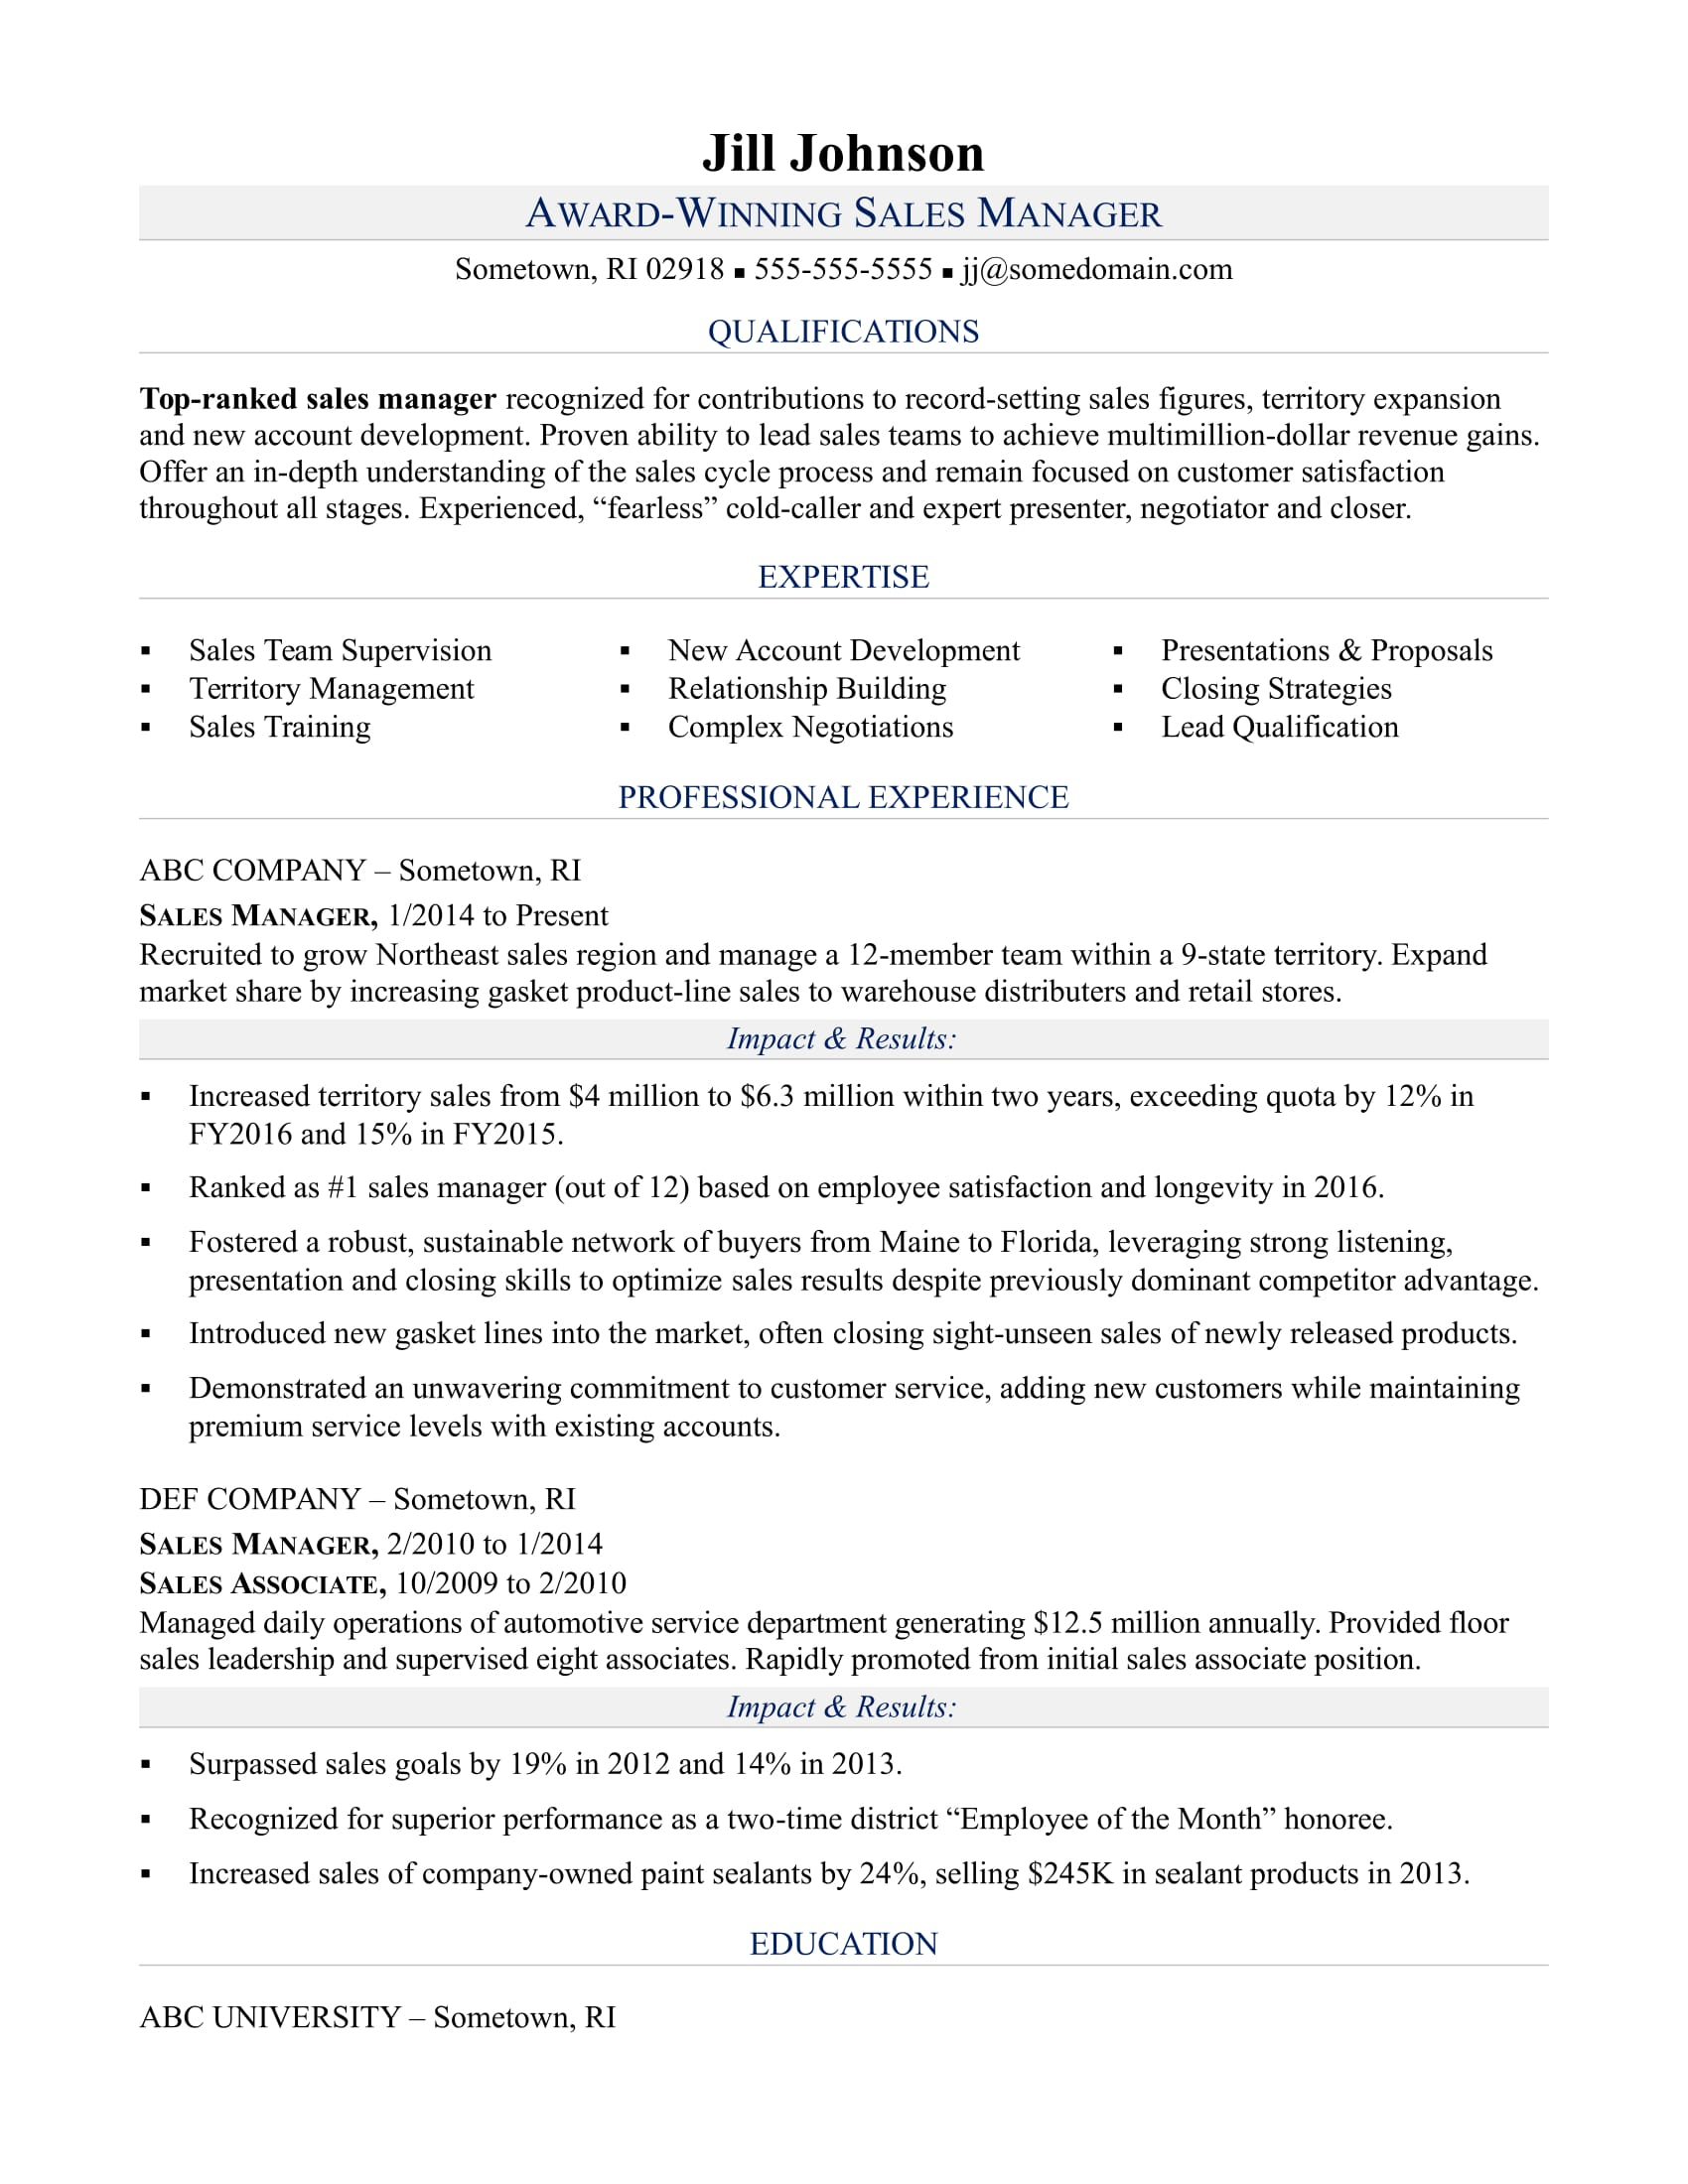 sample resume for a sales manager - Example Management Resume